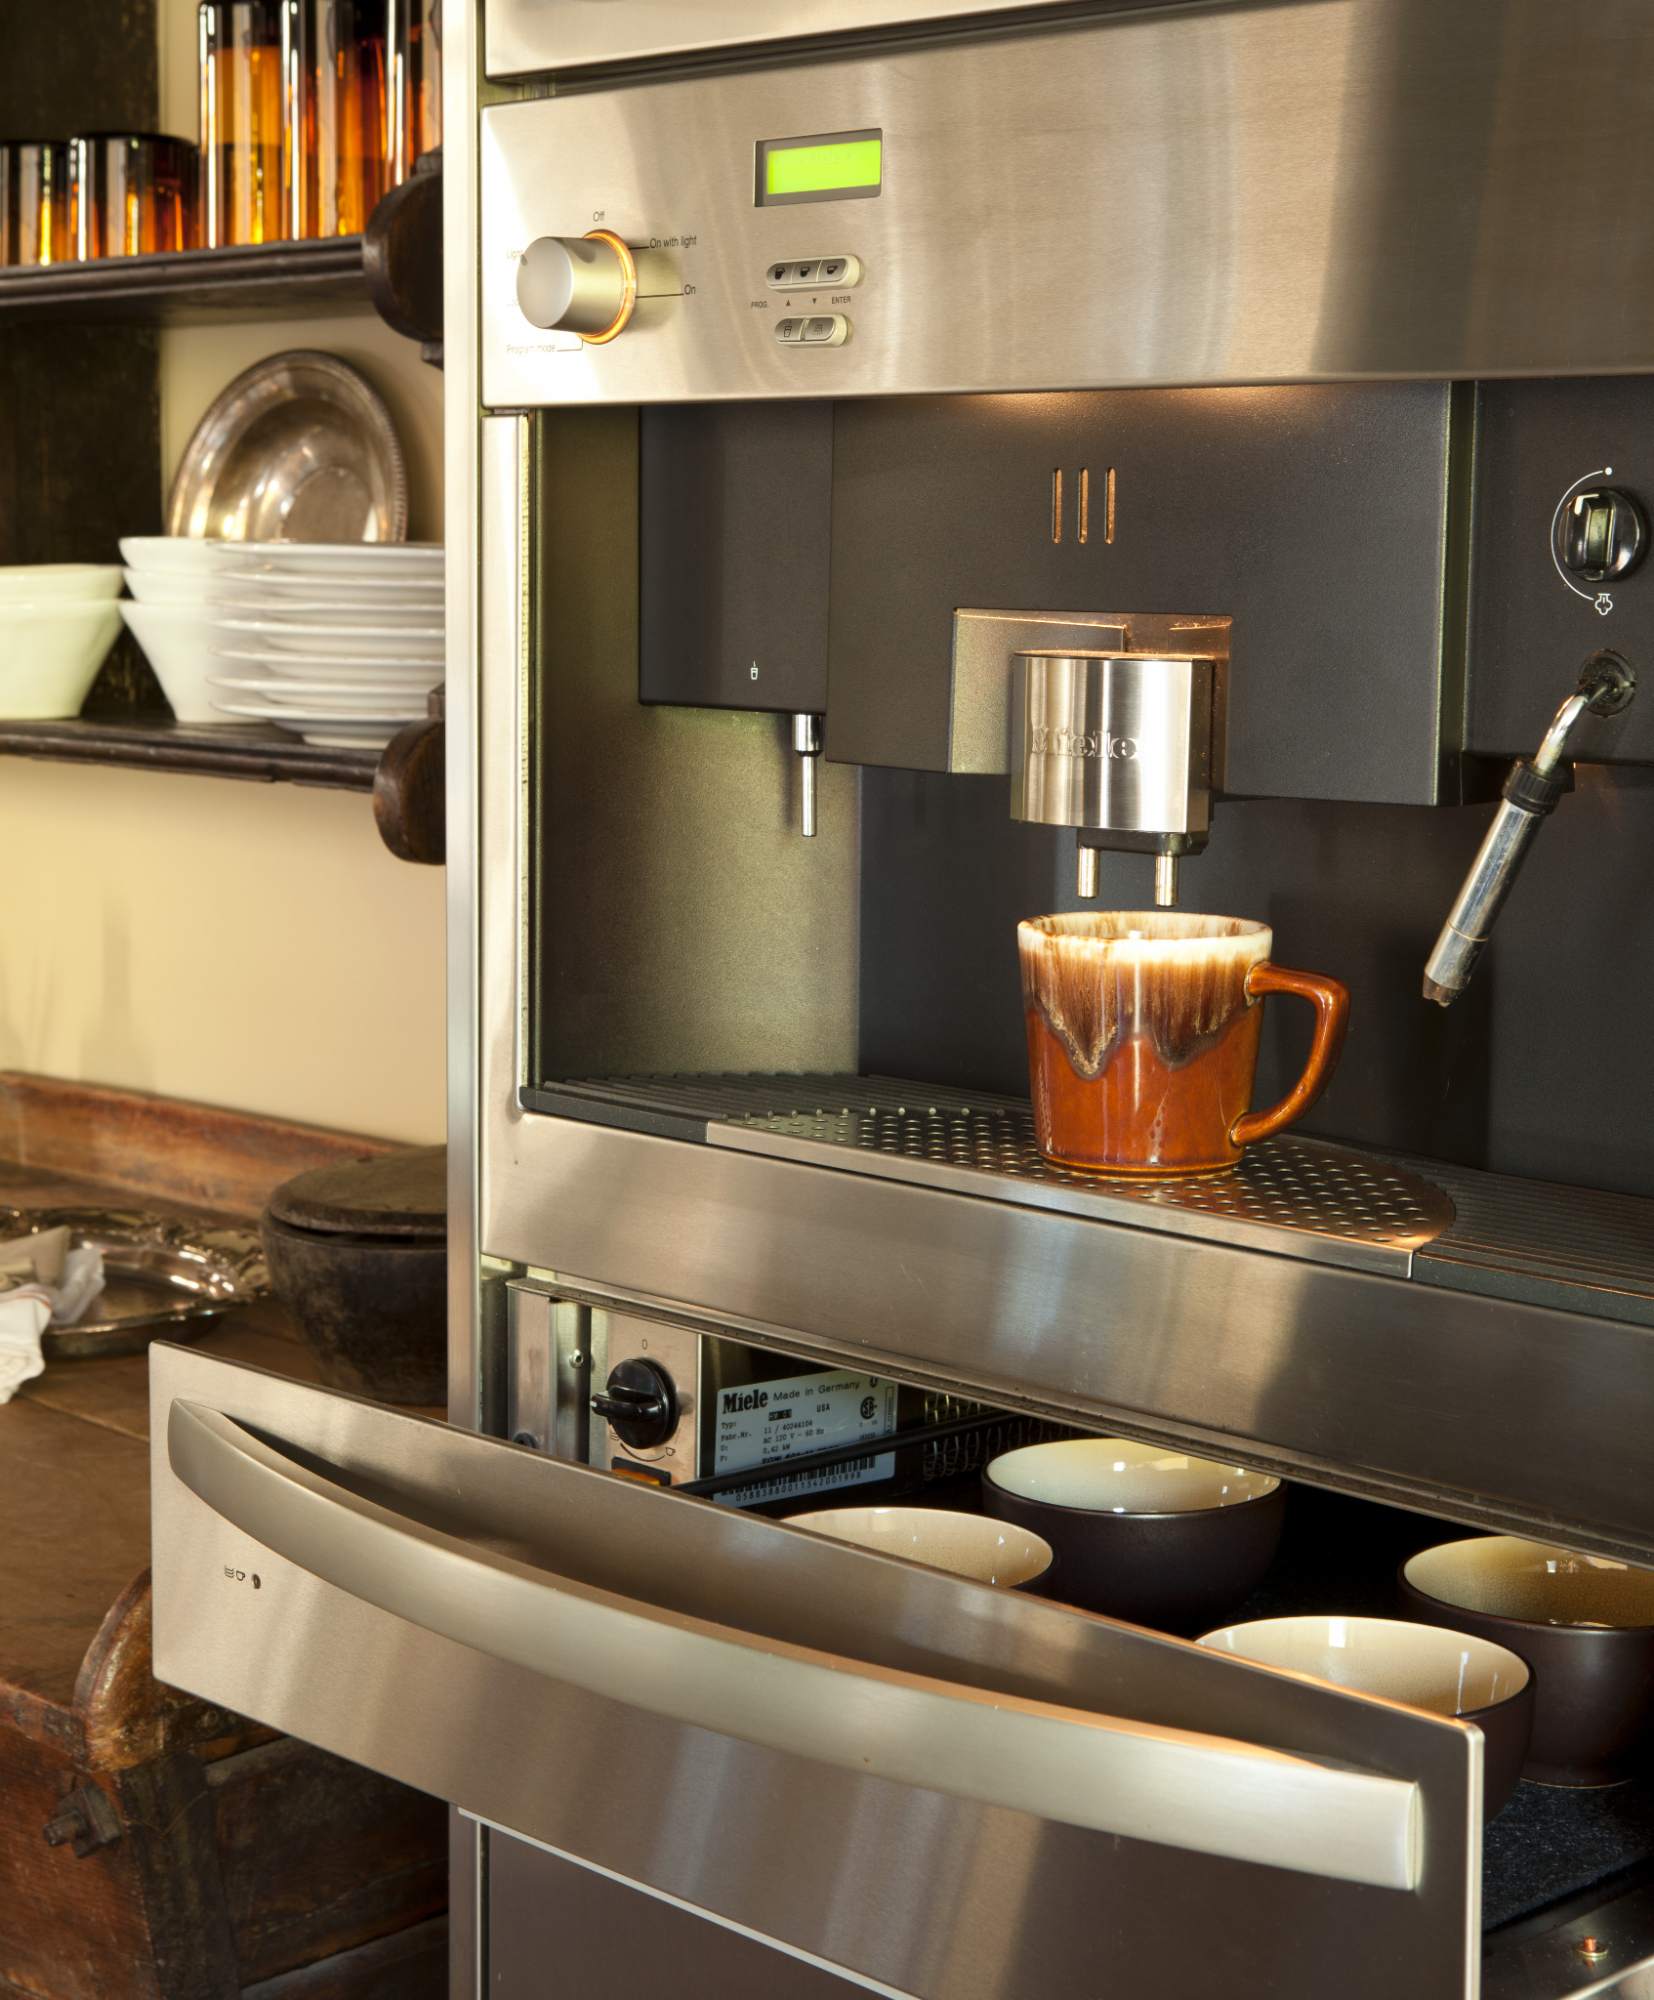 Miele Built In Coffeemaker Double Ovens And Warming Drawers